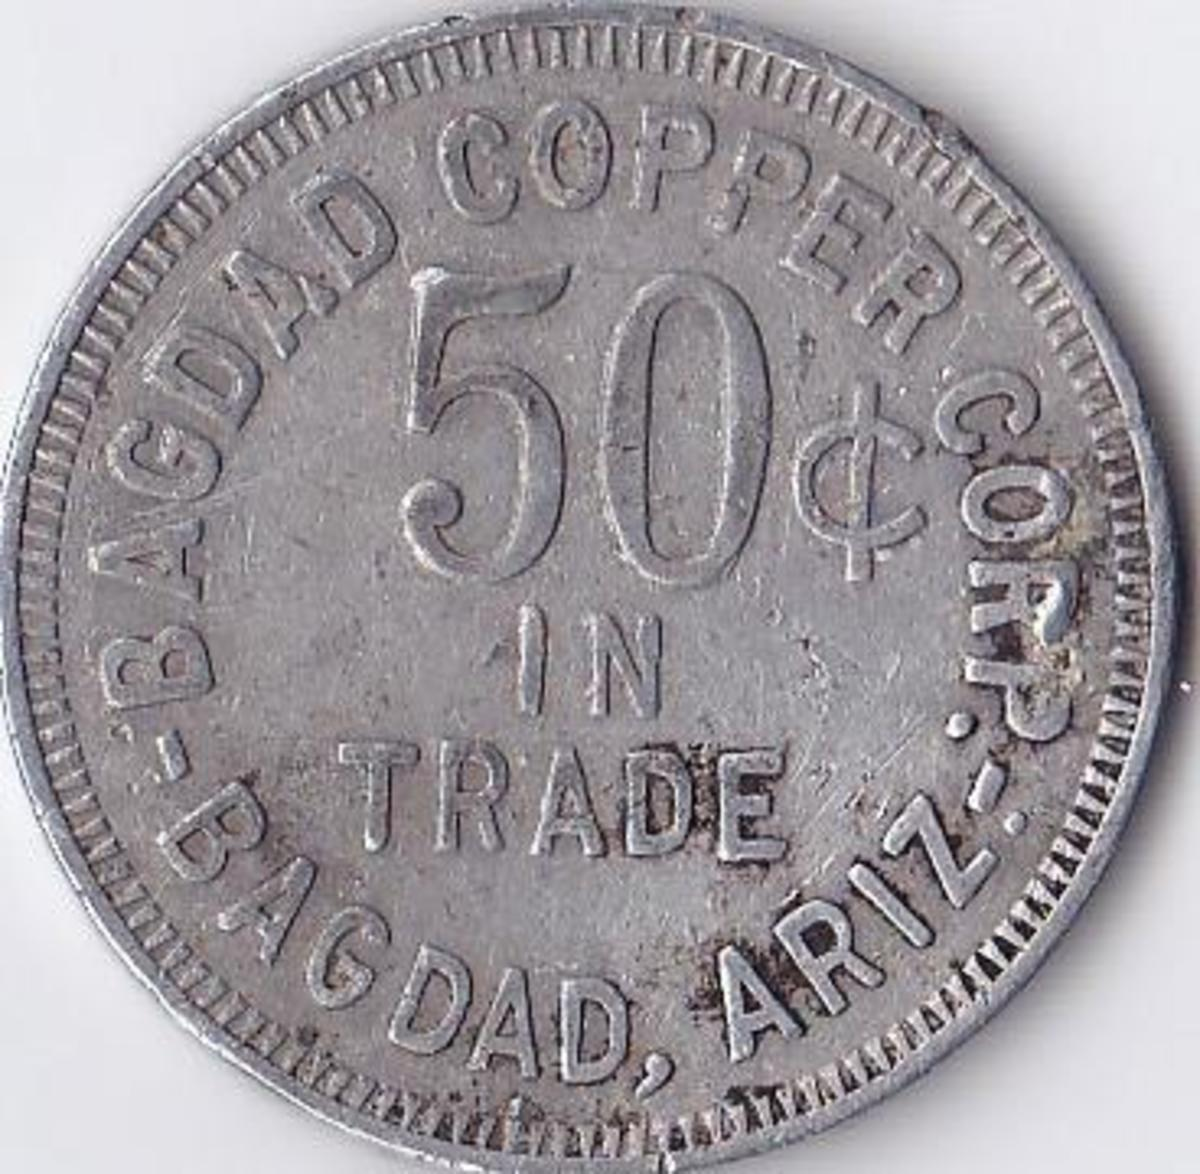 This is not a saloon token, but is a territorial trade token issued by a copper mine settlement in Bagdad Arizona. Image copyright Linda Lantin.